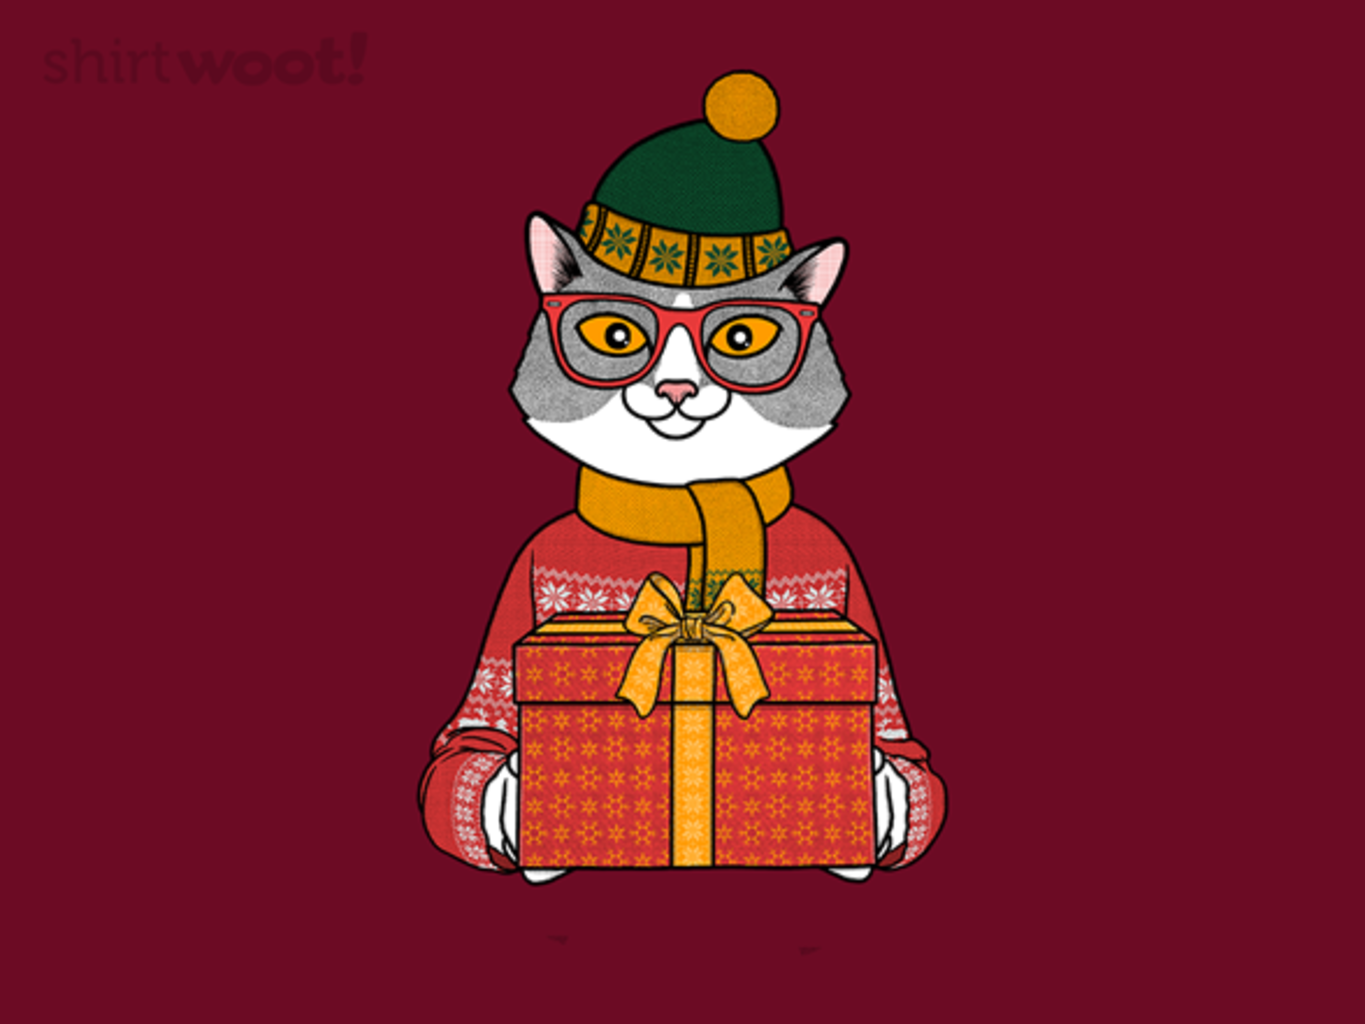 Woot!: Meowy Christmas - $8.00 + $5 standard shipping